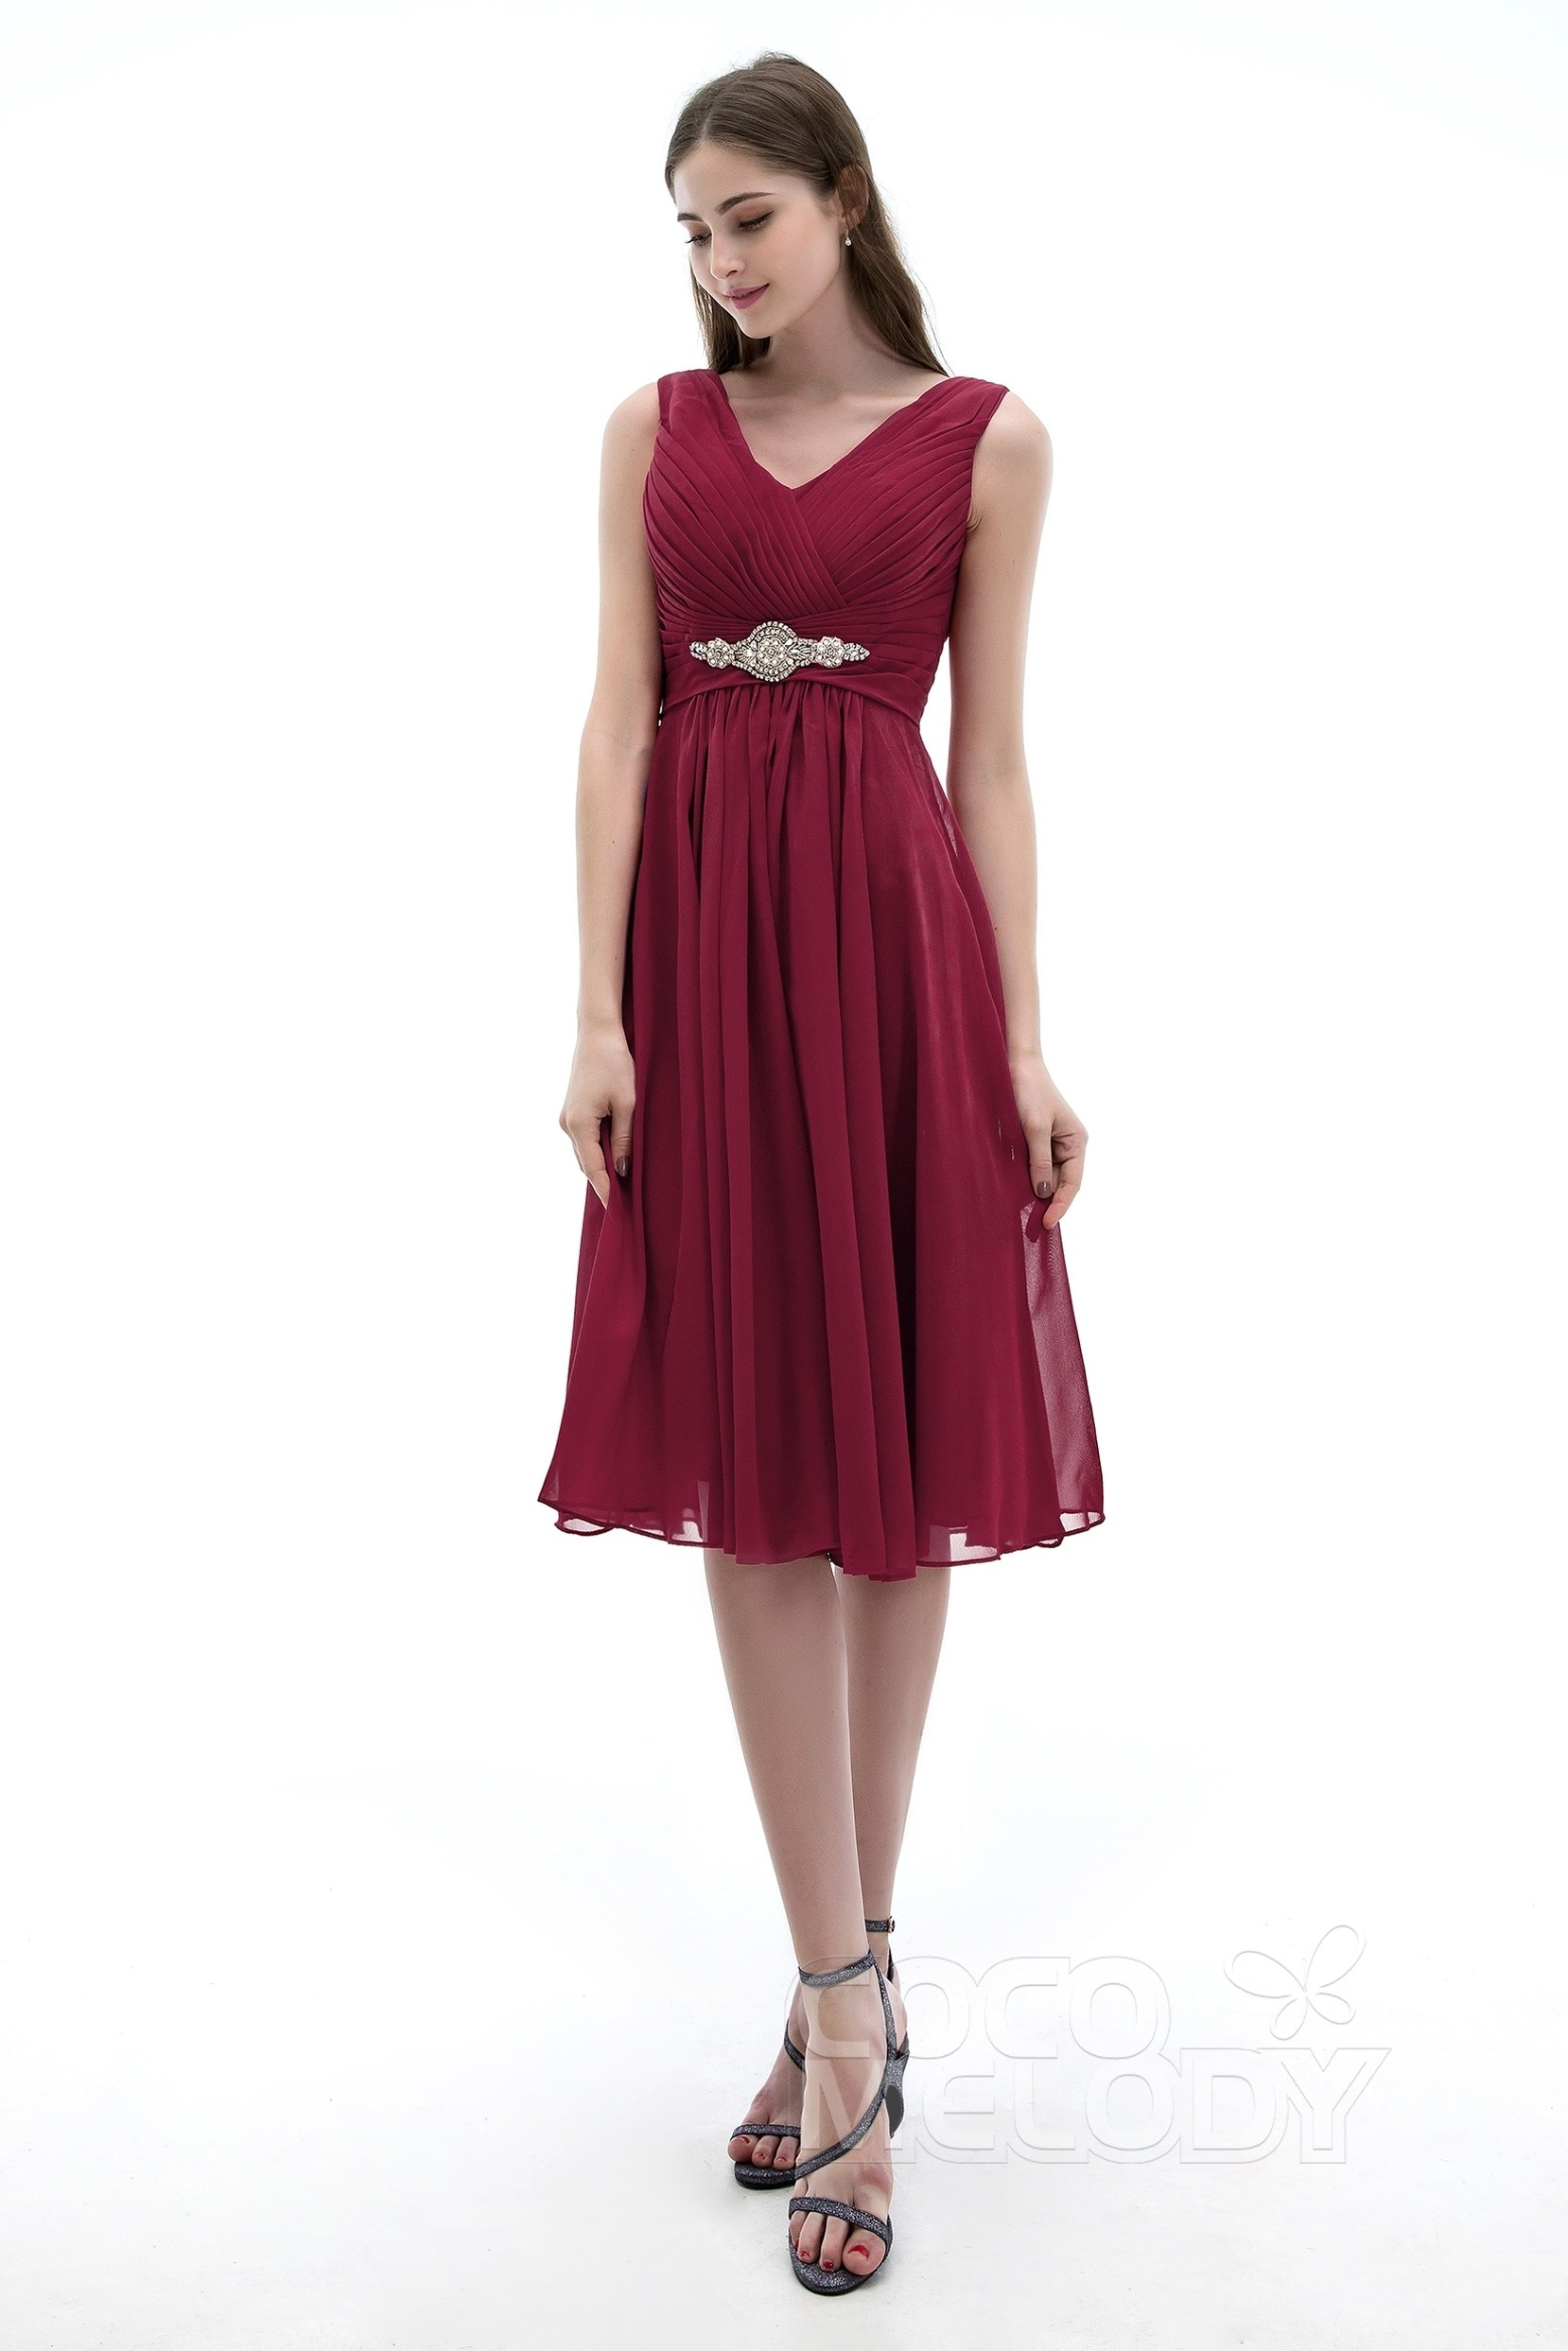 7cf73c566919cd Hot Selling A-Line V-Neck Knee Length Chiffon Bridesmaids Dress COZK1302A